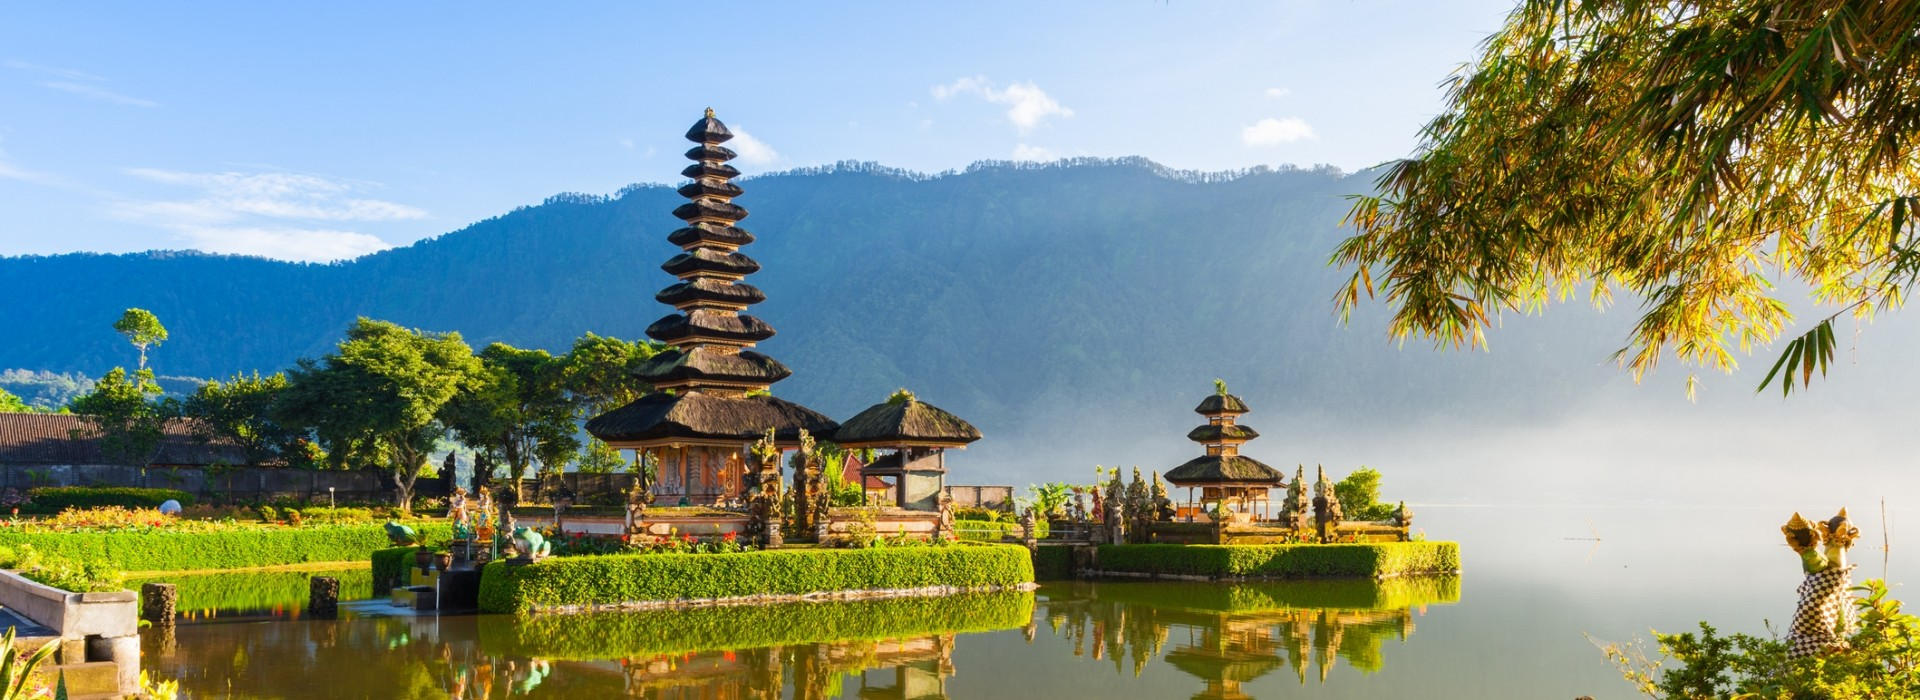 Cultural, Religious and Historic Sites Tours in Java